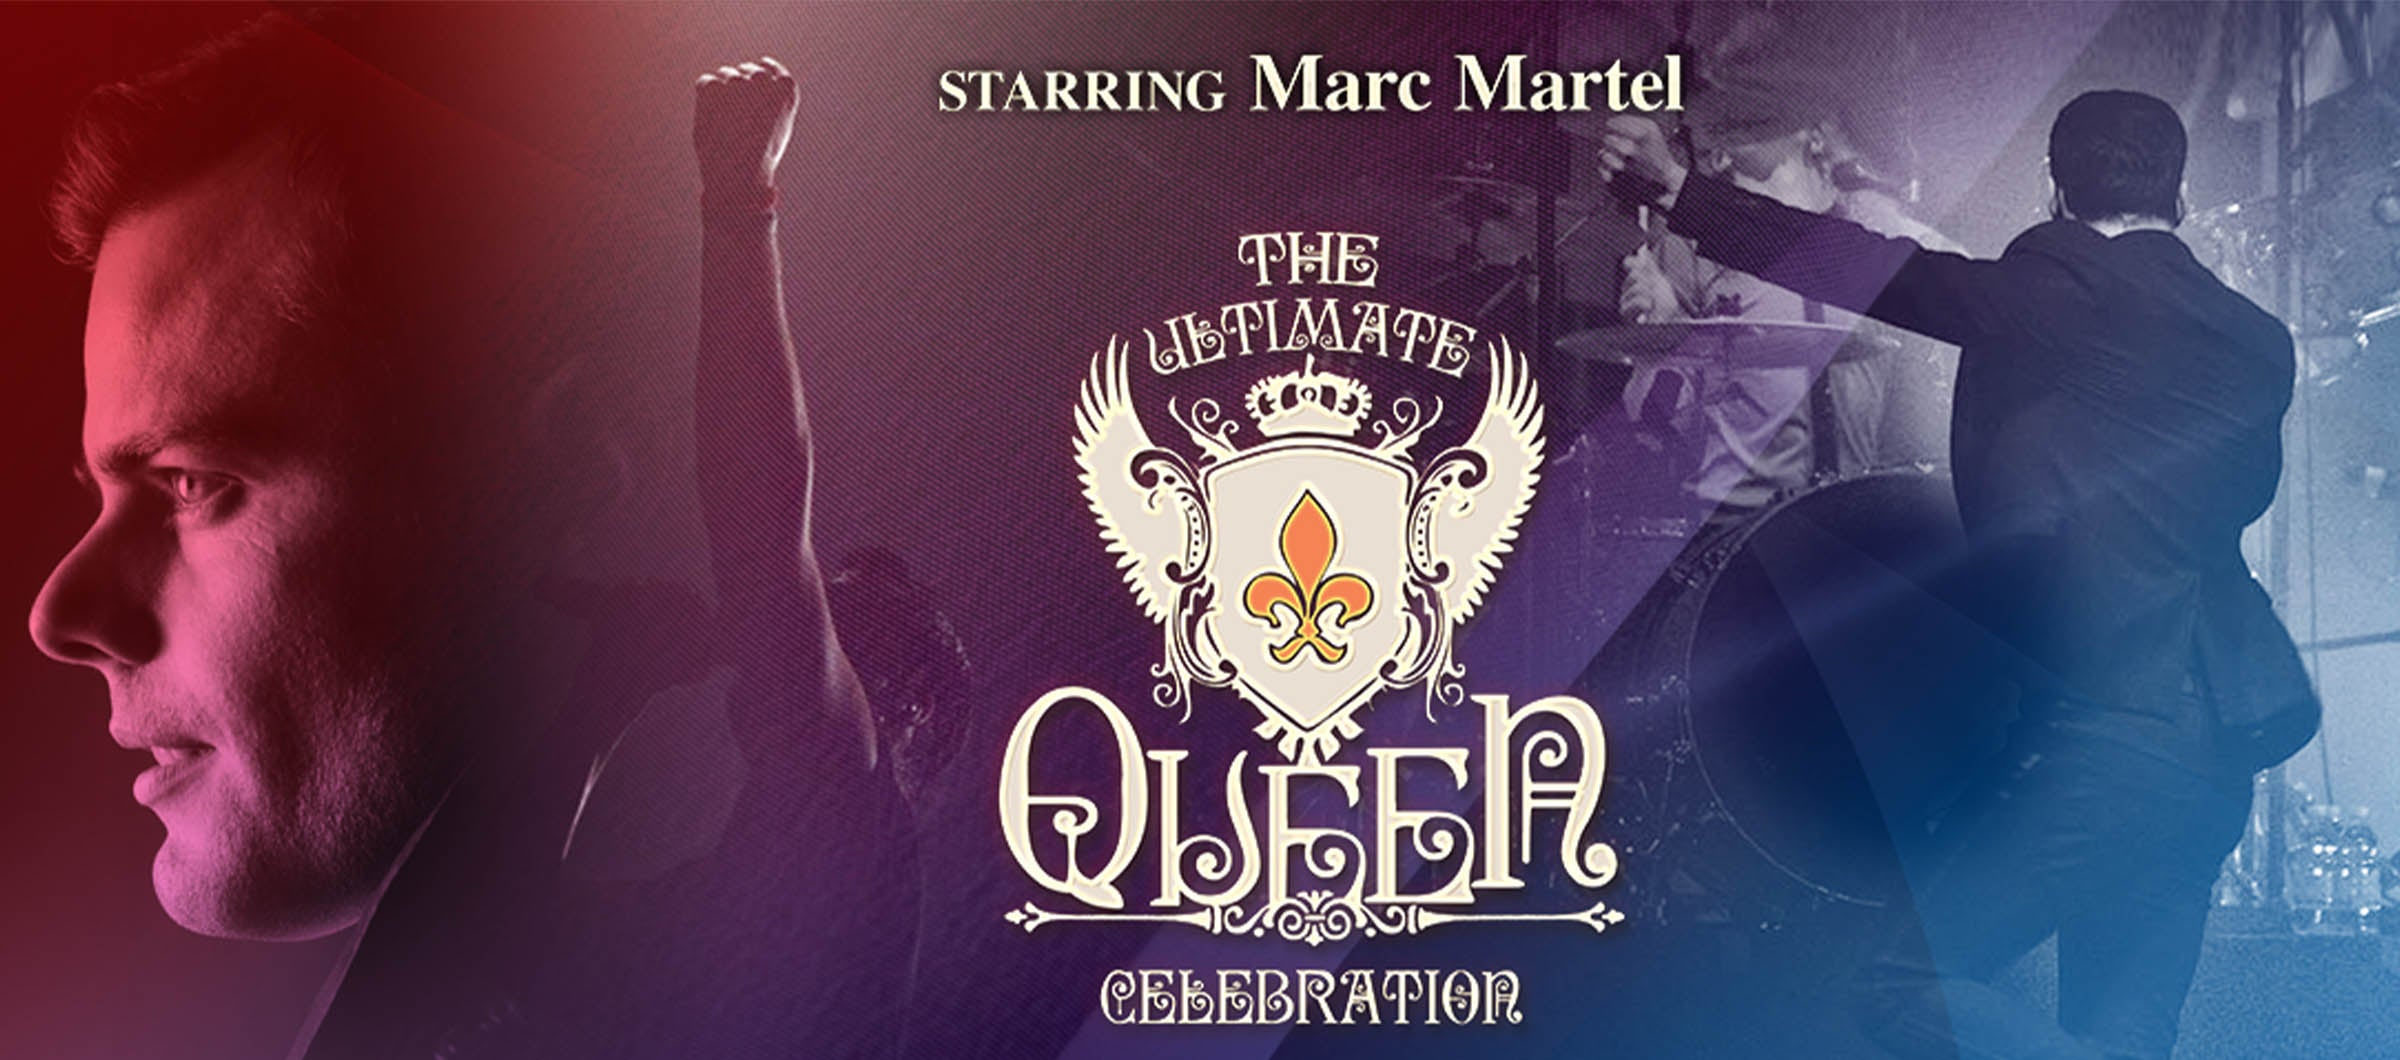 The Ultimate Queen Celebration with Marc Martel